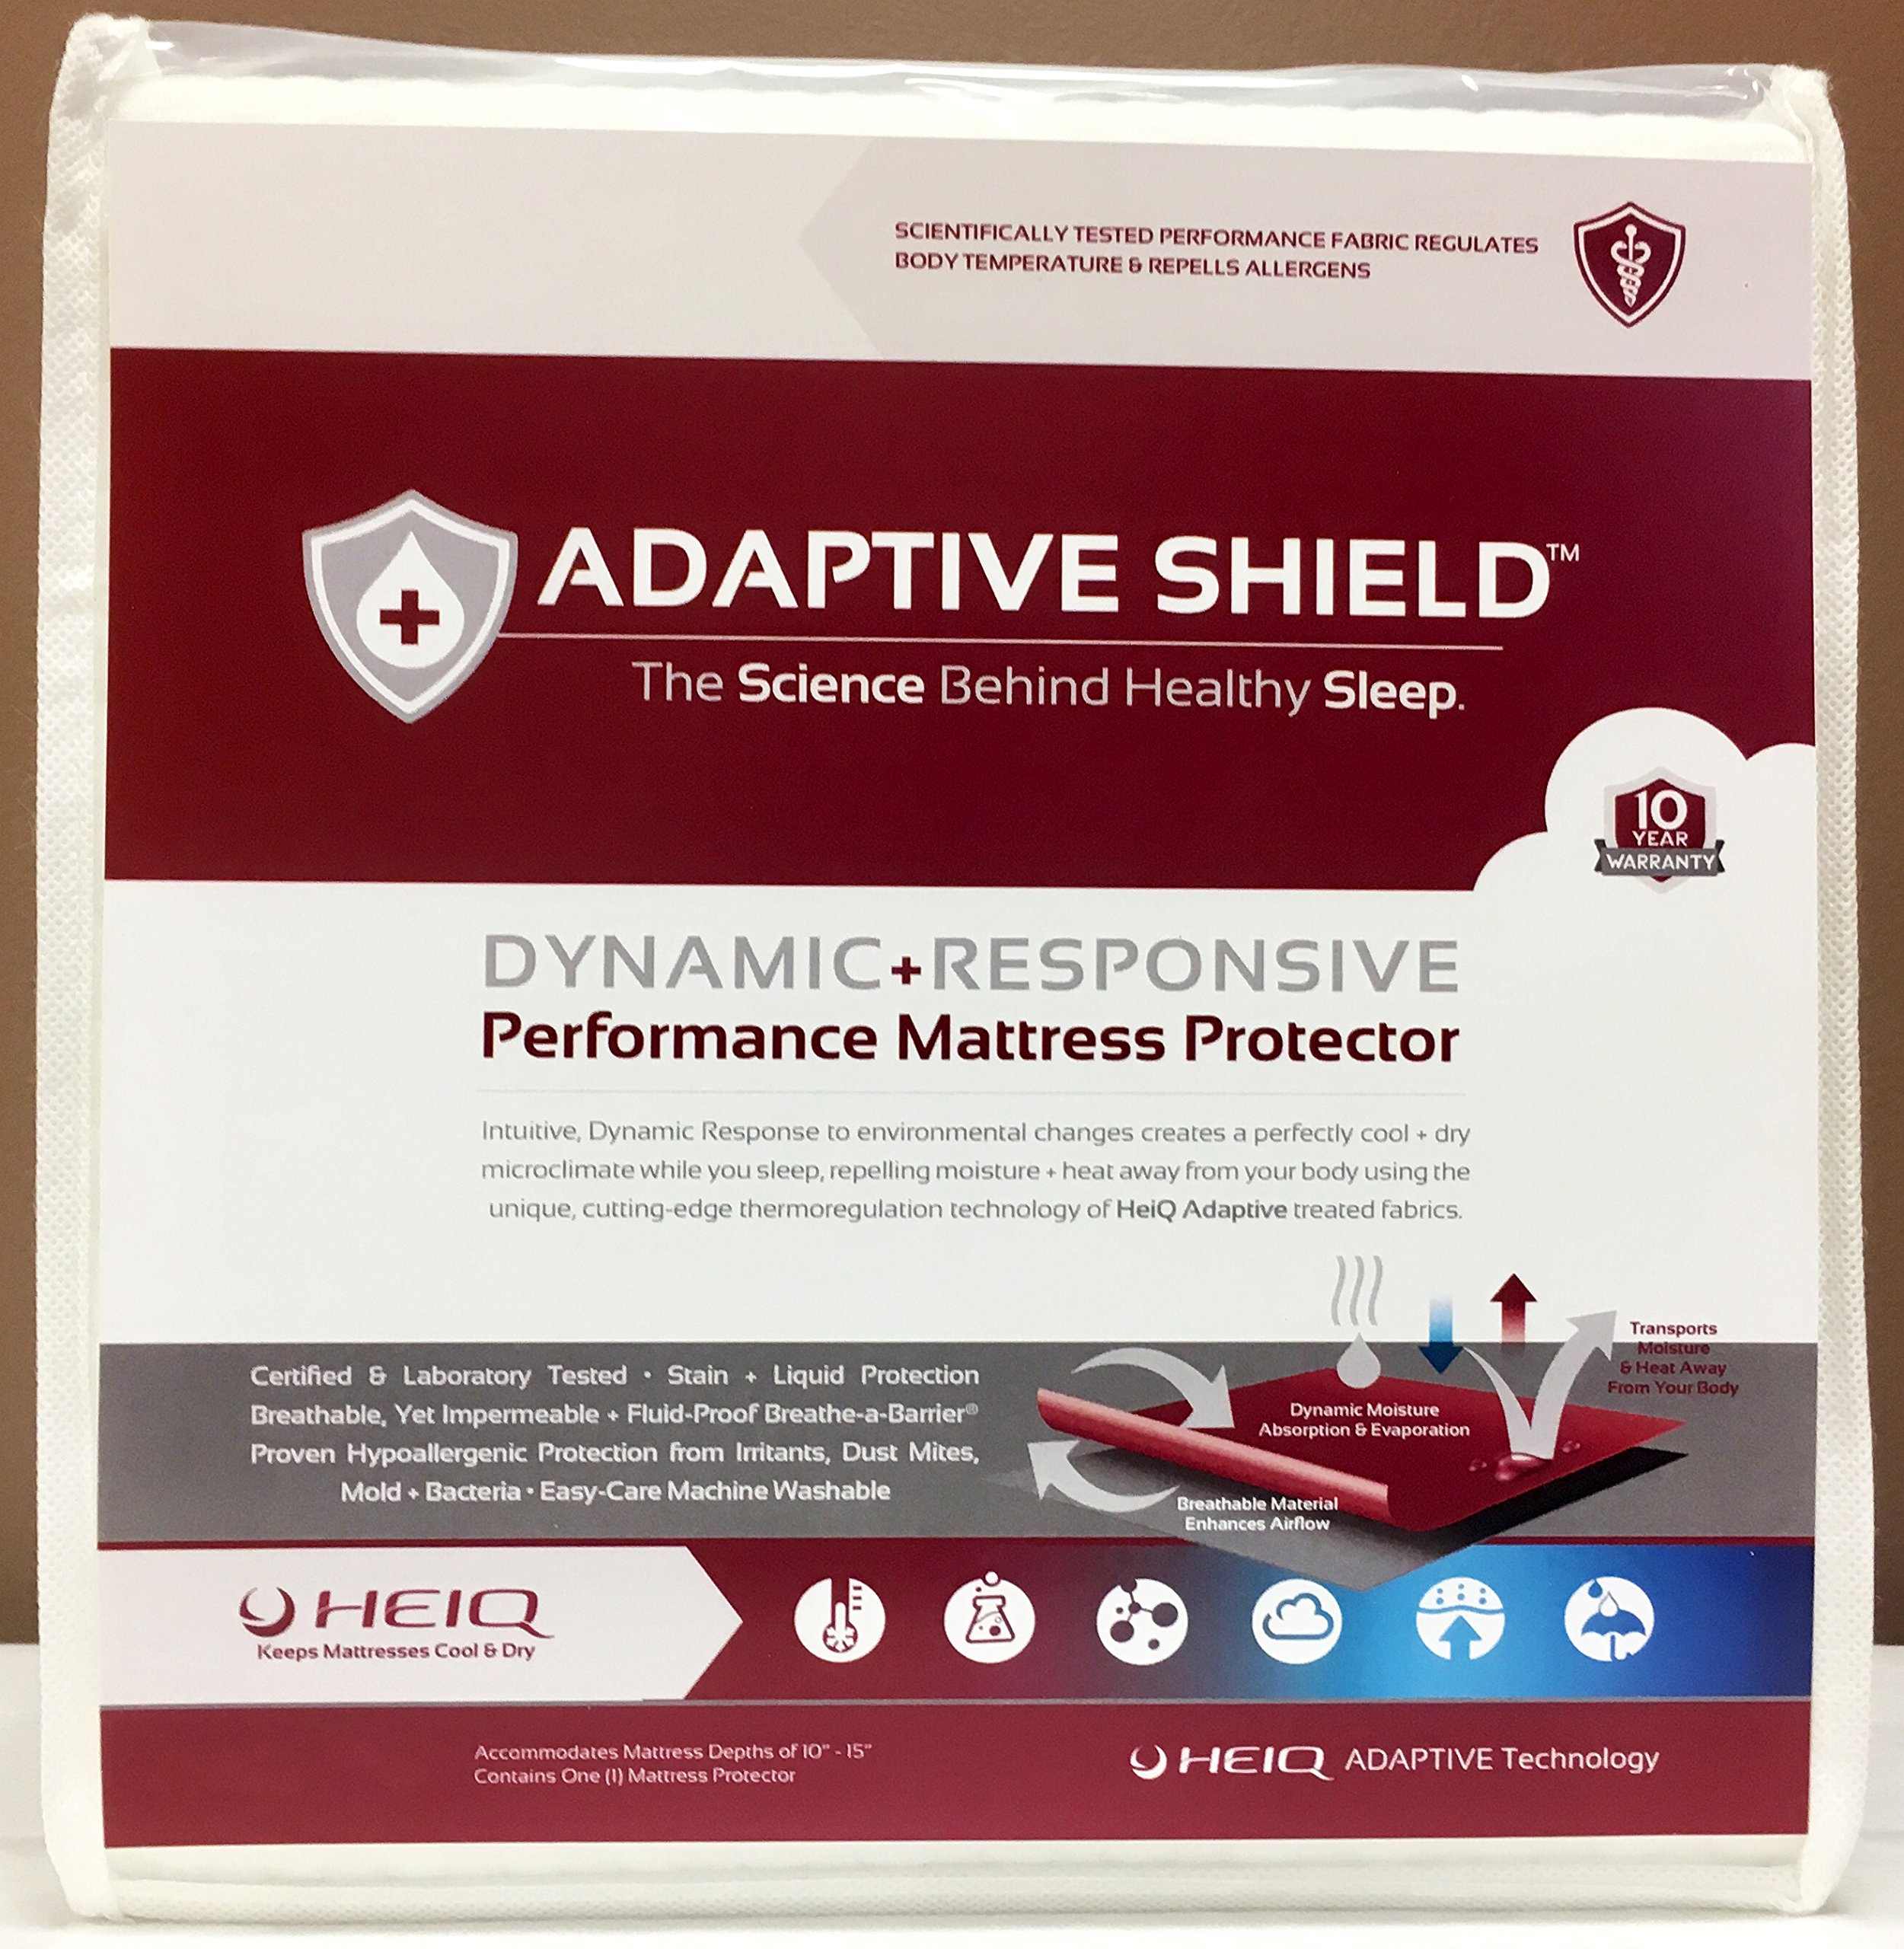 Adaptive Shield Premium Performance Mattress Protector - Lab Tested Allergy Free and Waterproof, Vinyl Free Noiseless Sleep, Crinkle Free, Machine Washable, and Compatible with All Mattresses (King) by Adaptive Shield, Inc. (Image #7)